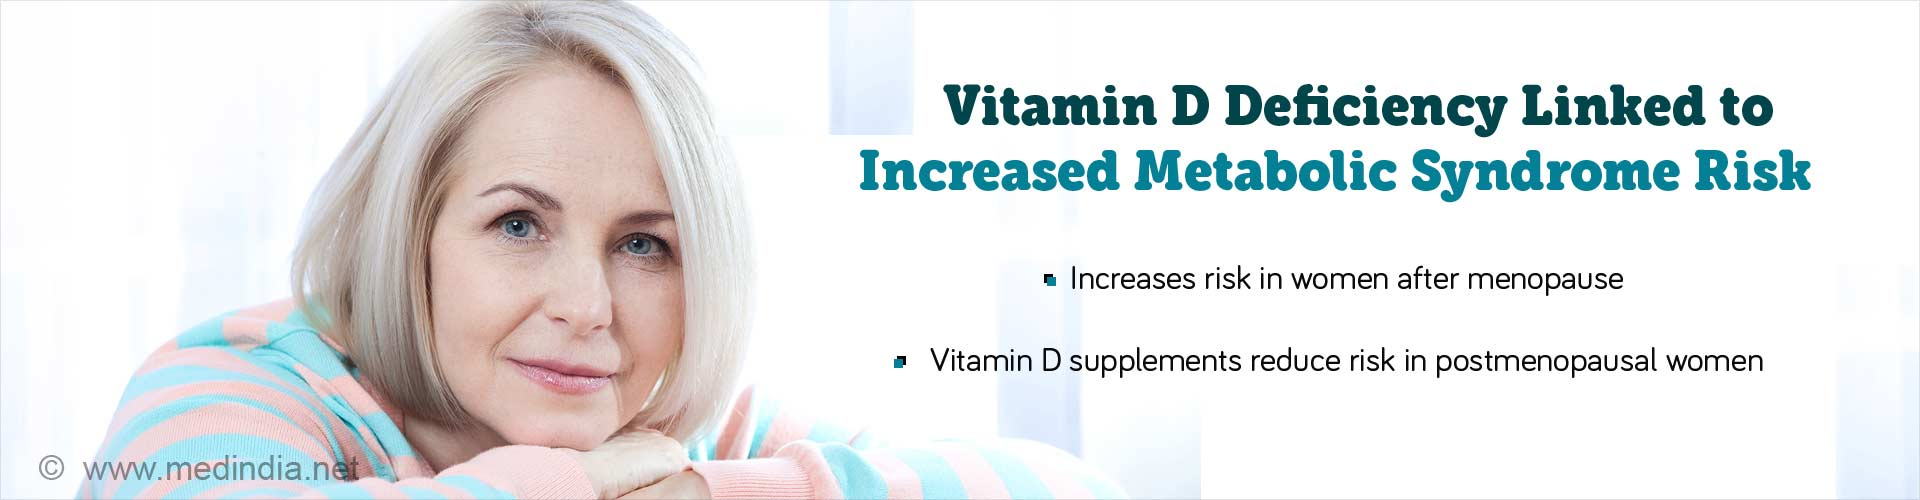 Lack of Vitamin D May Up Metabolic Syndrome Risk in Women After Menopause